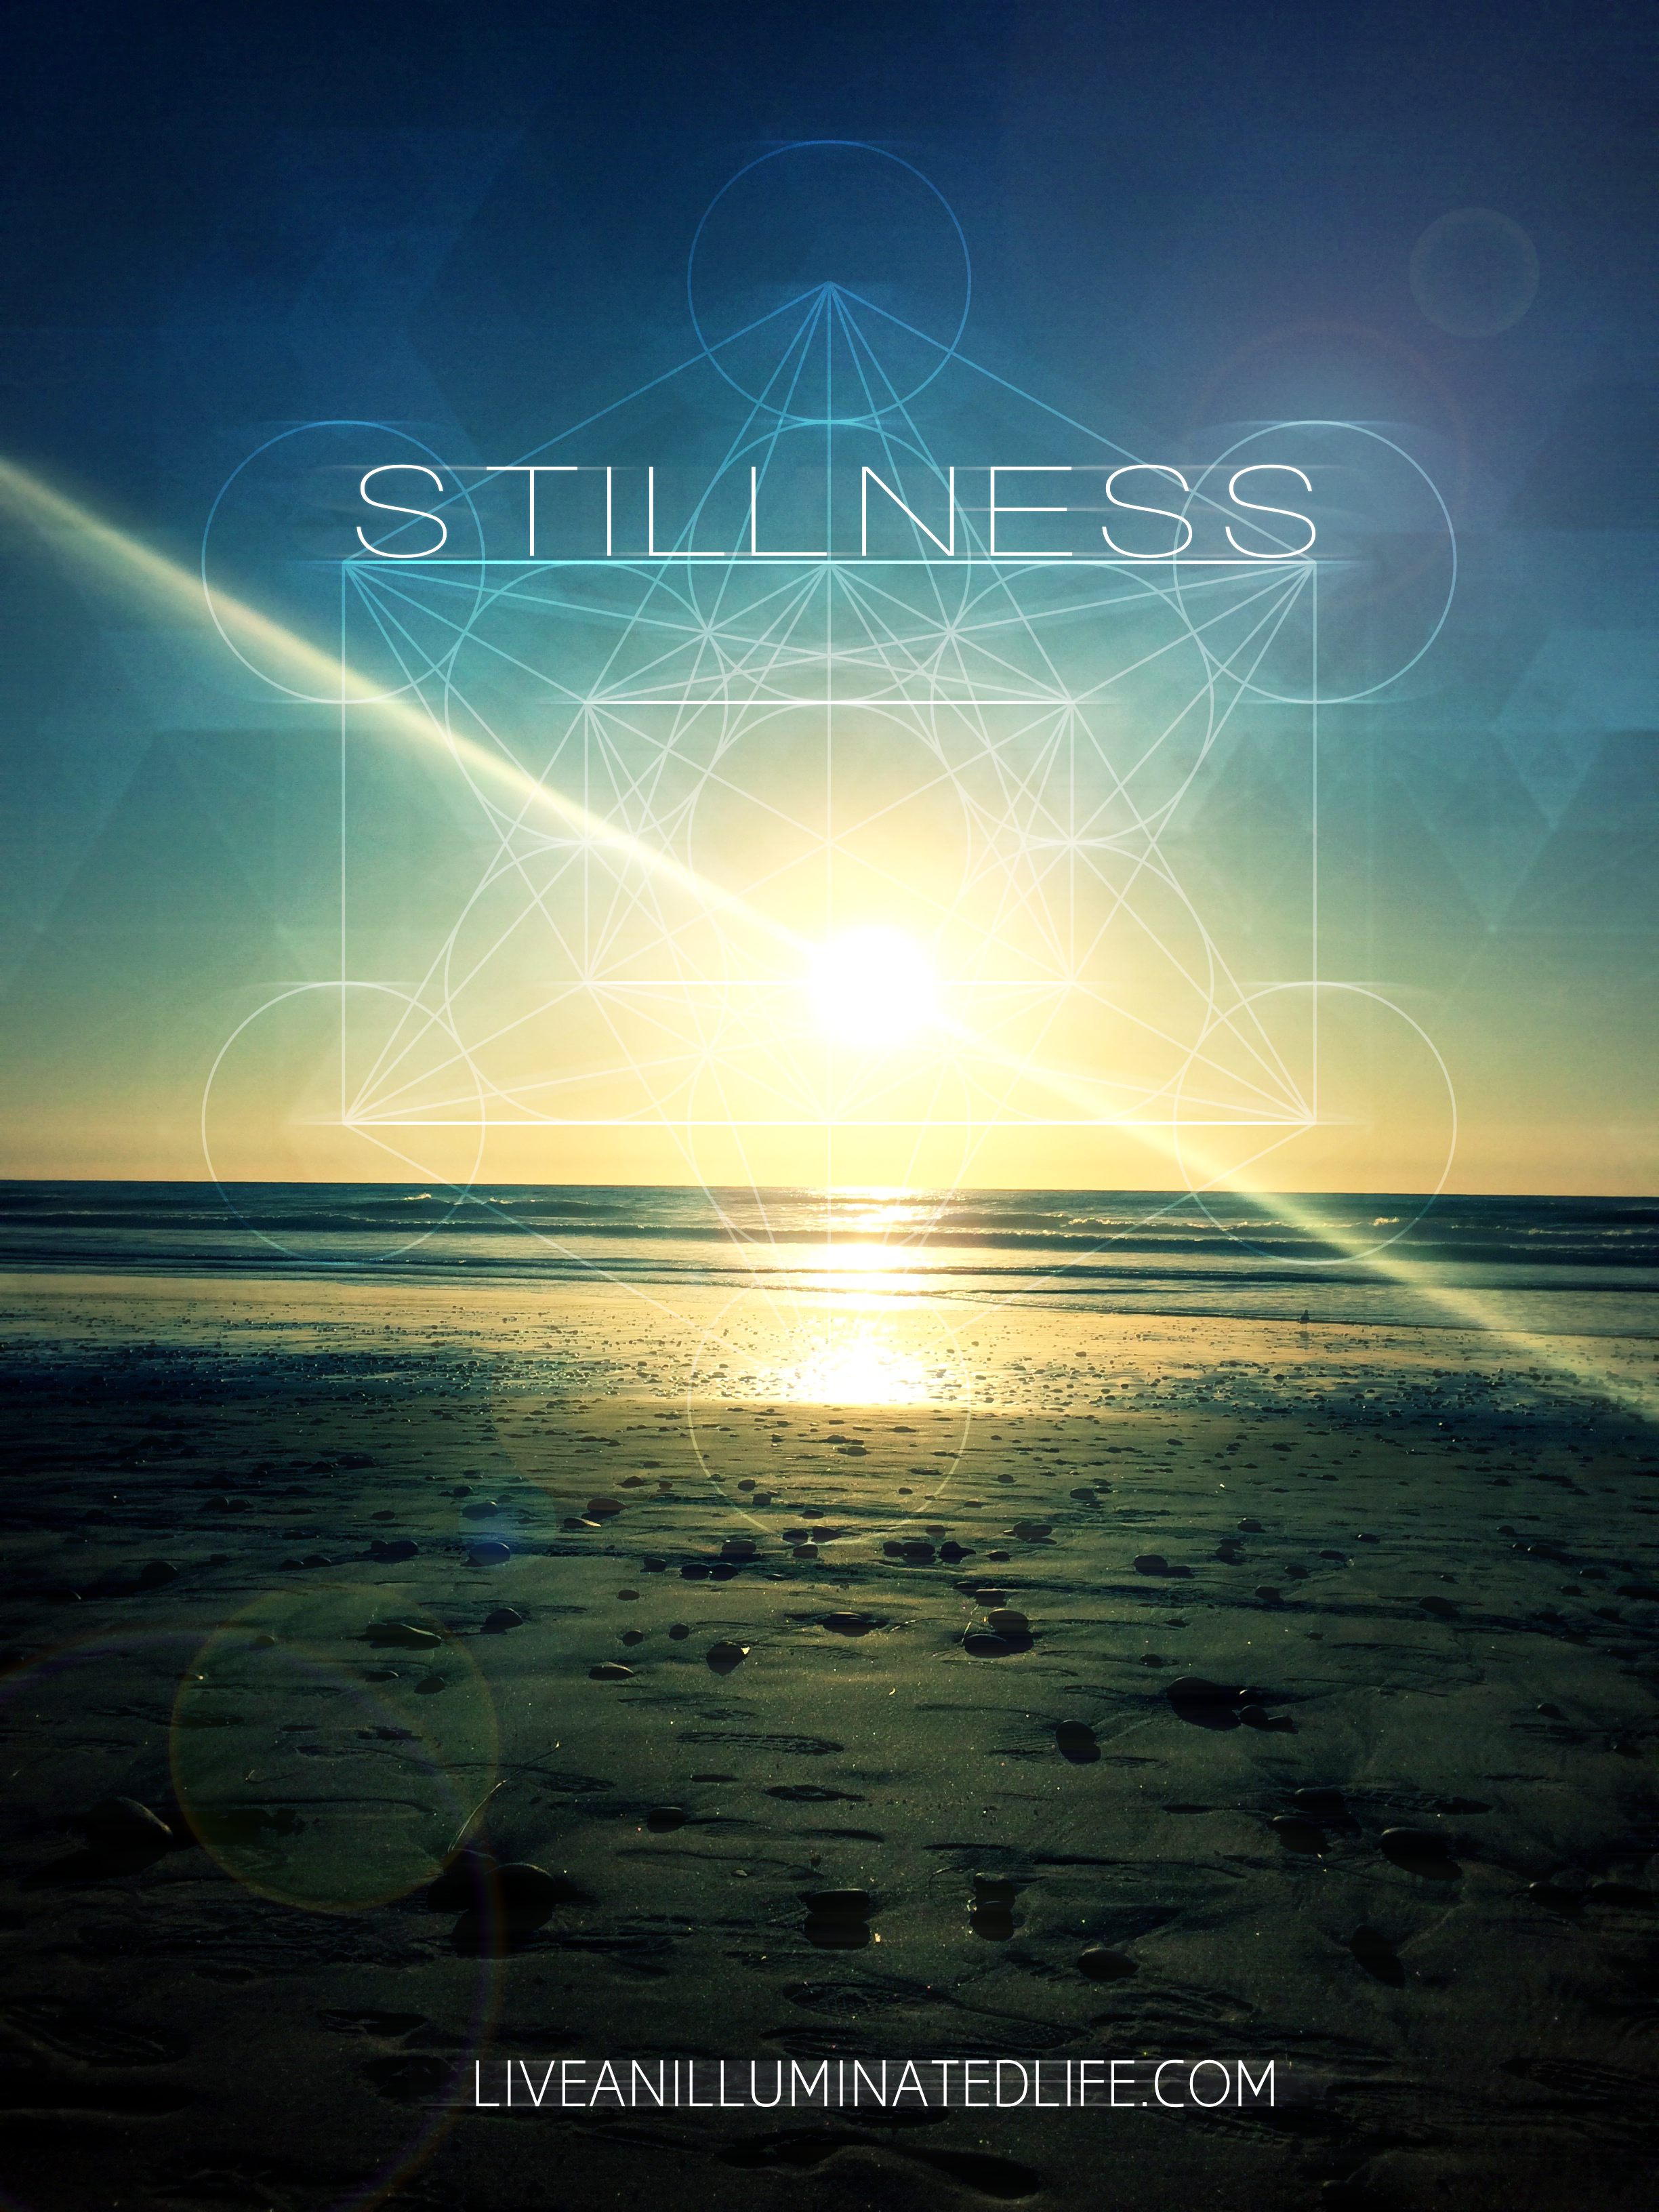 Stilliness by Belinda Pearl